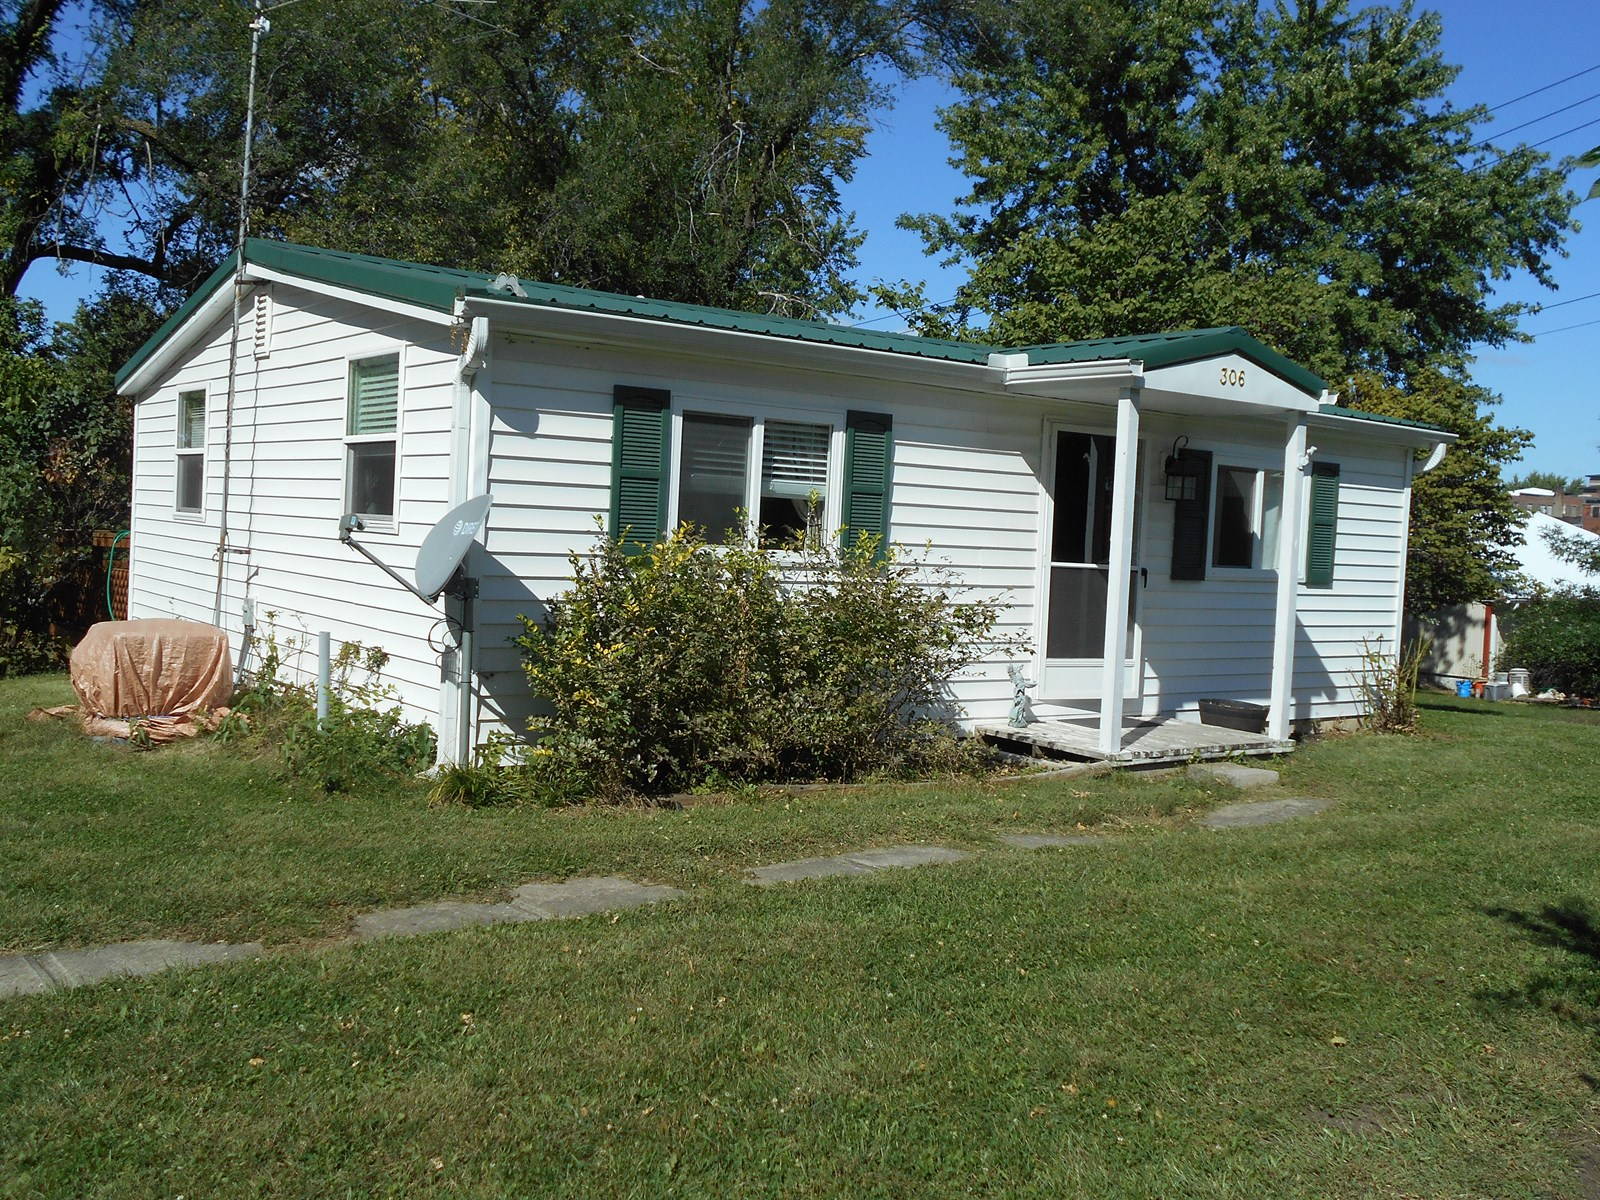 1BEDROOM (COULD BE 2) MAYSVILLE MO RANCH FOR SALE